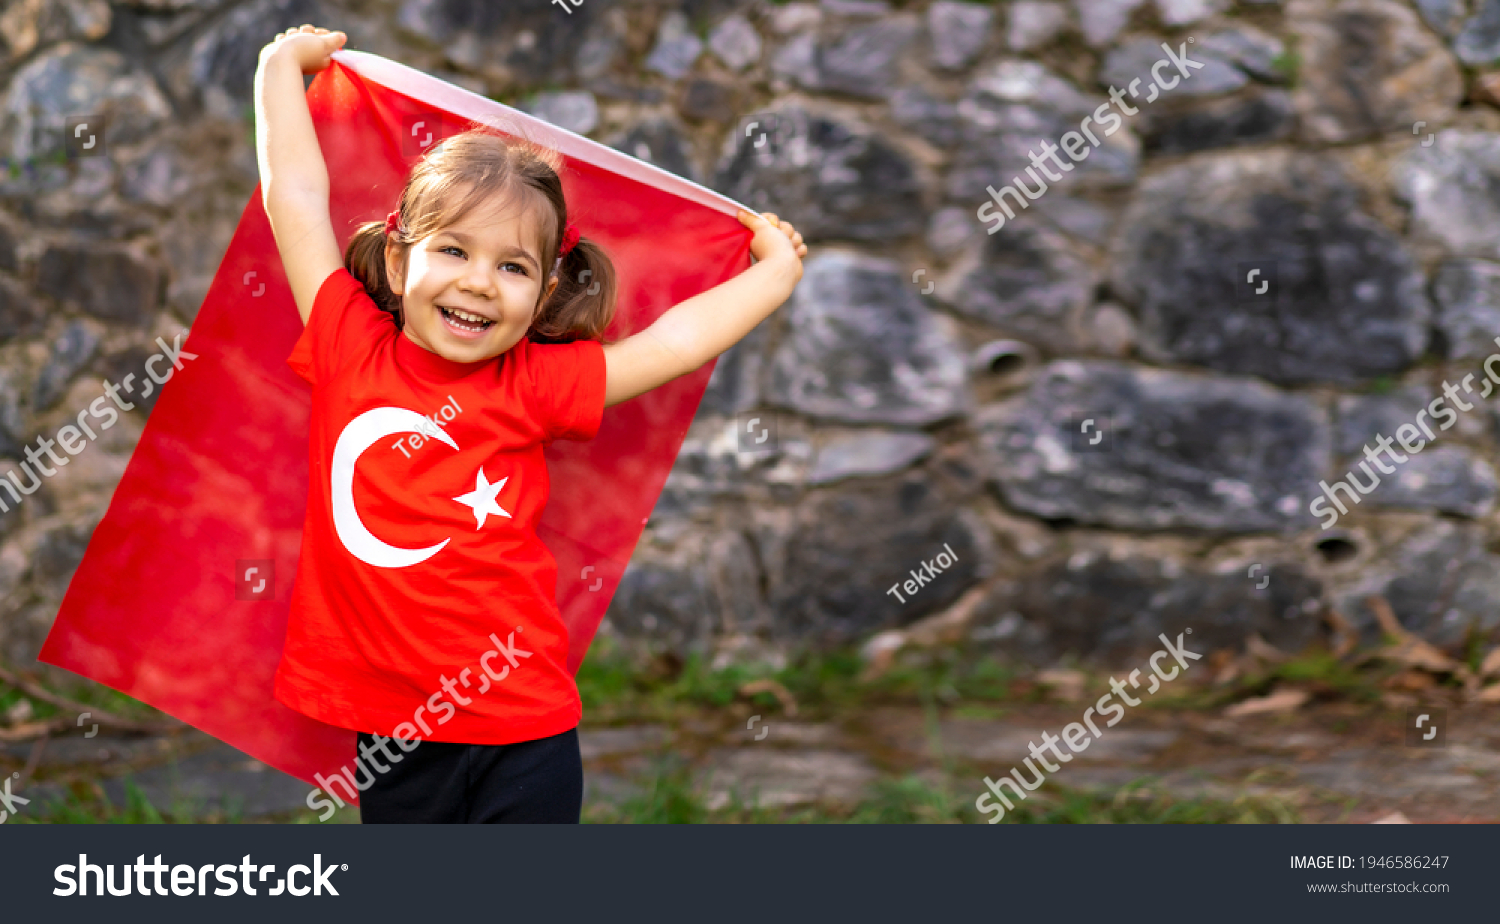 Portrait of happy little kid. Cute baby with Turkish flag t-shirt. Toddler hold Turkish flag in hand. Patriotic holiday. Adorable child celebrates national holidays. Copy space for text. #1946586247